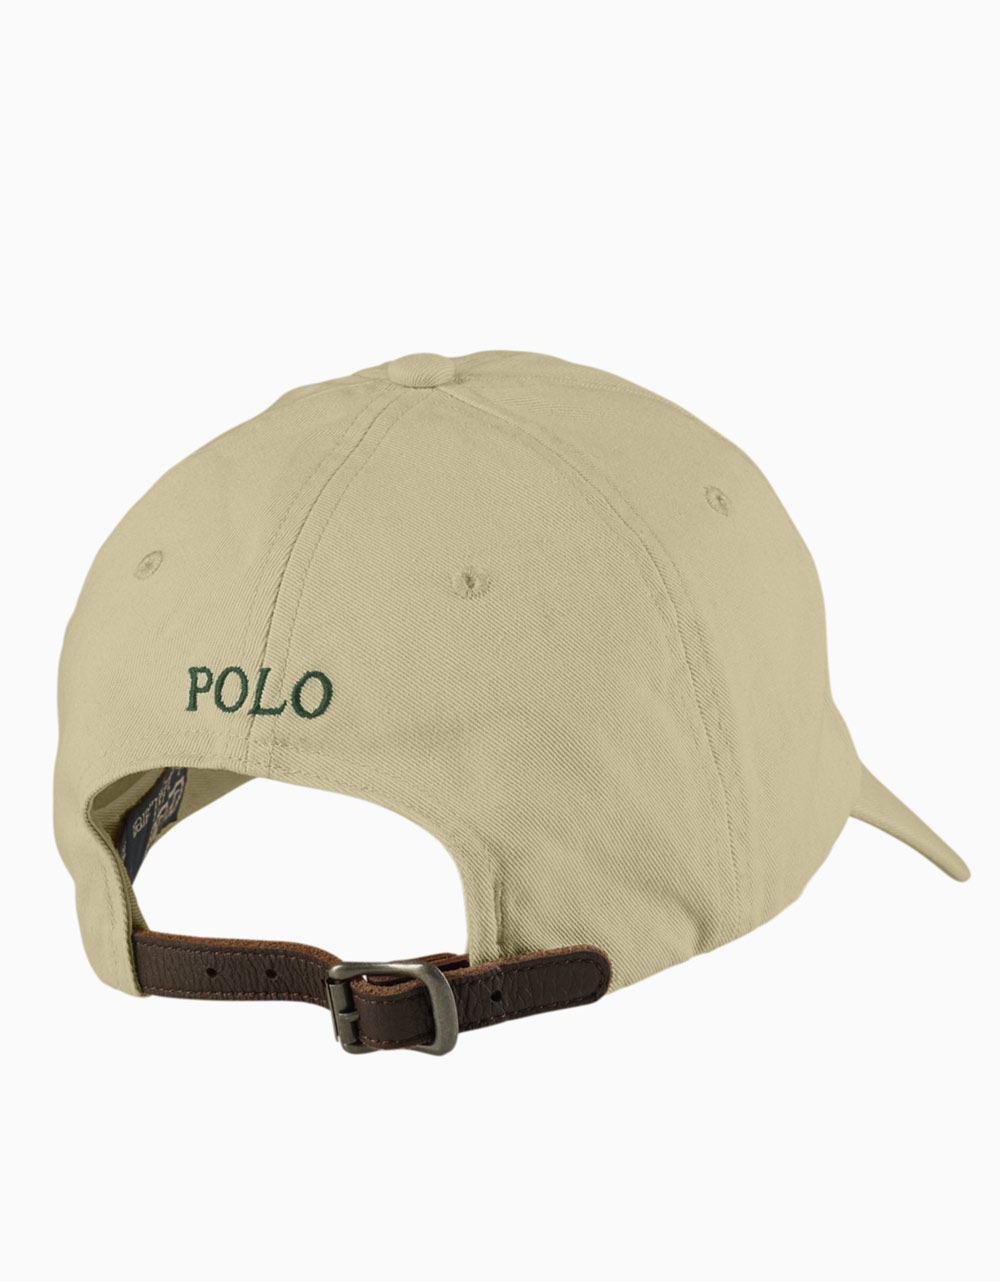 polo ralph lauren classic chino sport cap for men lyst. Black Bedroom Furniture Sets. Home Design Ideas